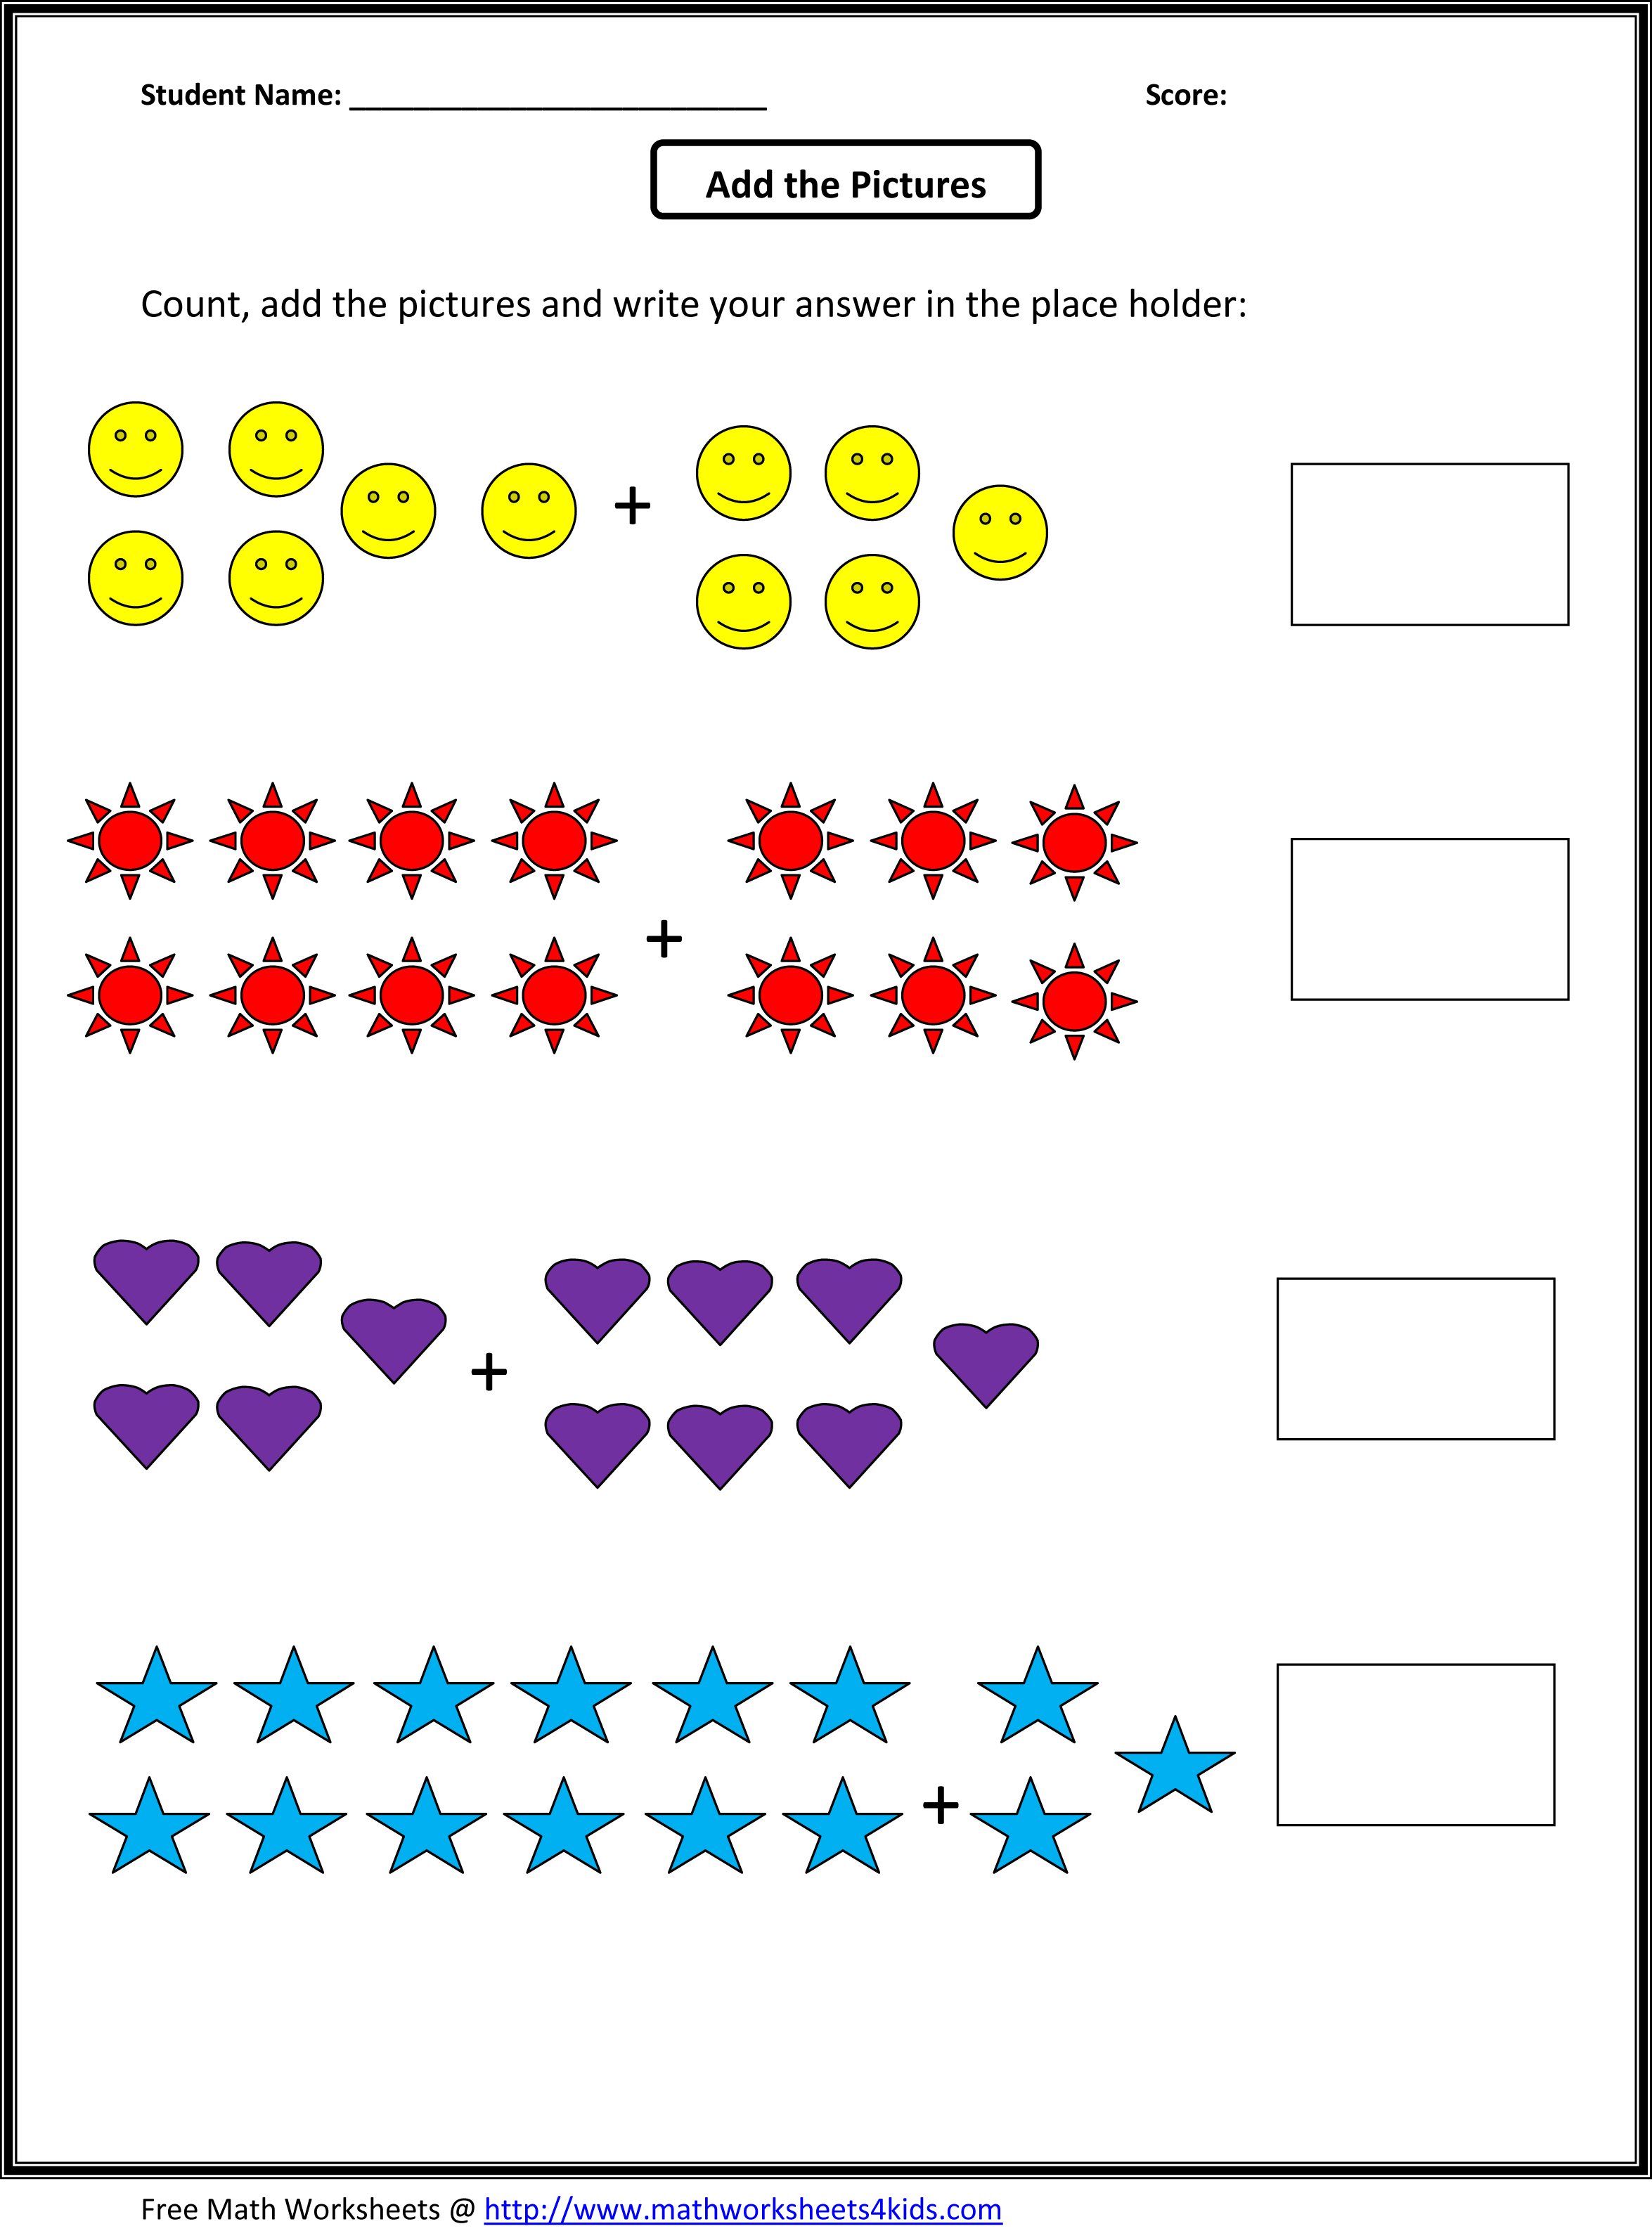 Weirdmailus  Wonderful Grade  Maths Worksheet  Reocurent With Remarkable Math Worksheets For St Grade Free  Reocurent With Beauteous Prime Factorization Using Exponents Worksheet Also Tracing Names Worksheets In Addition Arcs Central Angles And Inscribed Angles Worksheet Answers And Geometric Proofs Worksheet With Answers As Well As Name That Fish Worksheet Answers Additionally Replacing Nouns With Pronouns Worksheets From Reocurentcom With Weirdmailus  Remarkable Grade  Maths Worksheet  Reocurent With Beauteous Math Worksheets For St Grade Free  Reocurent And Wonderful Prime Factorization Using Exponents Worksheet Also Tracing Names Worksheets In Addition Arcs Central Angles And Inscribed Angles Worksheet Answers From Reocurentcom